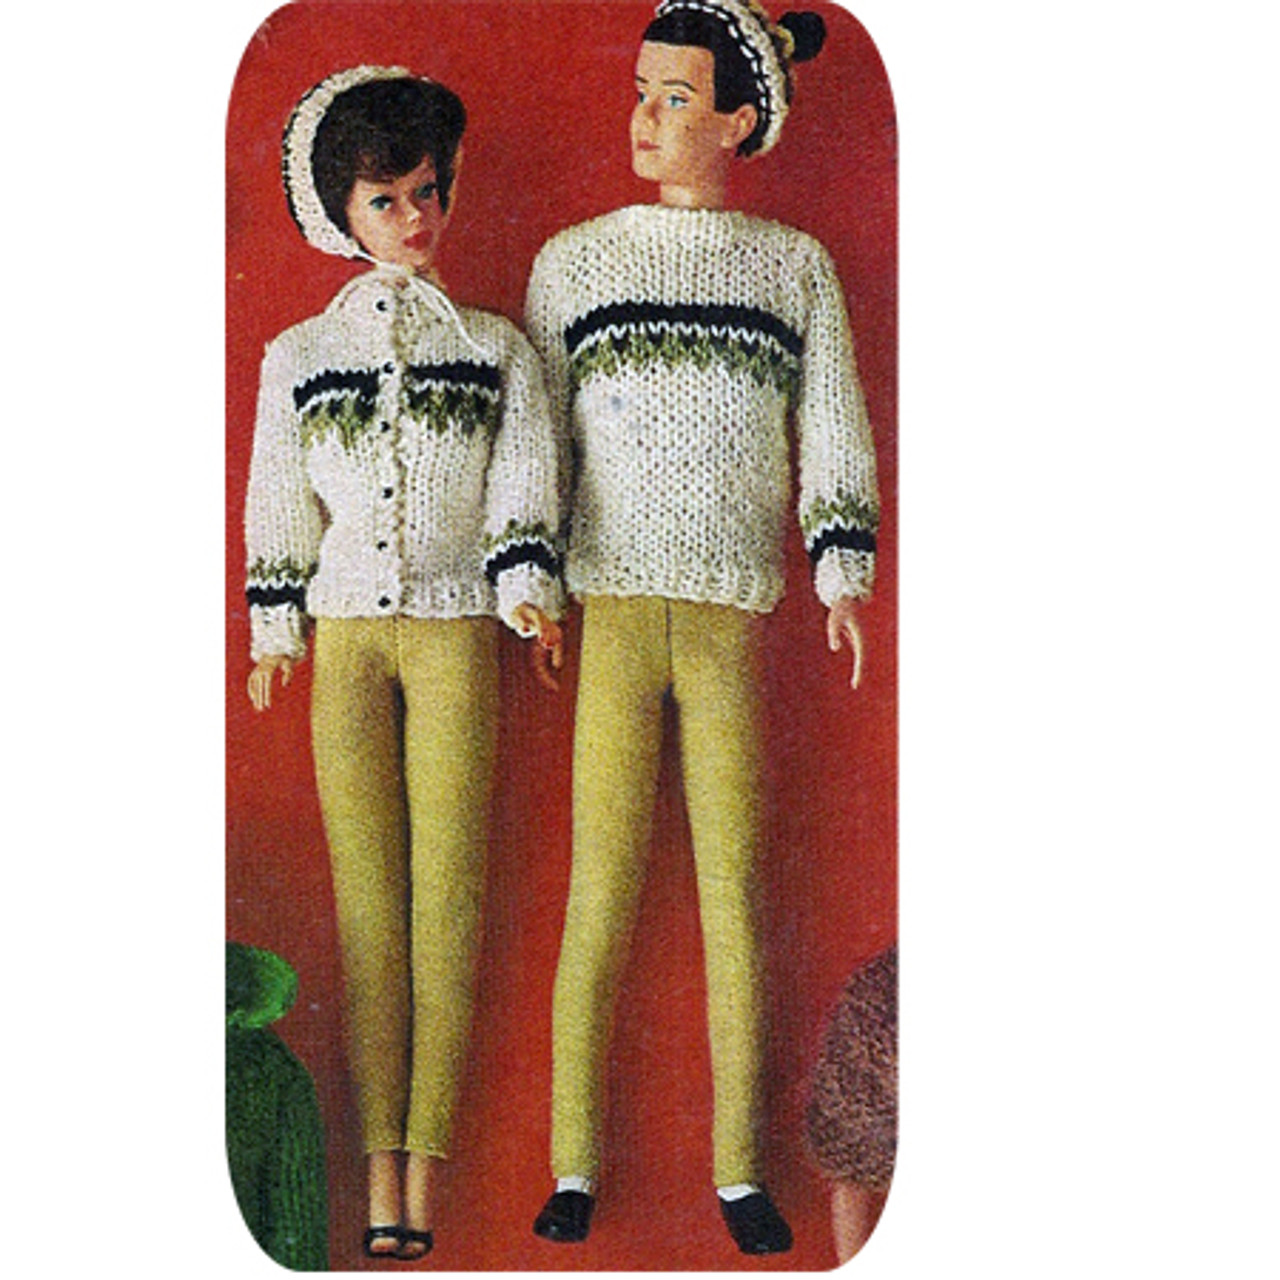 Ken Barbie Doll Knitted Ski Outfits Pattern